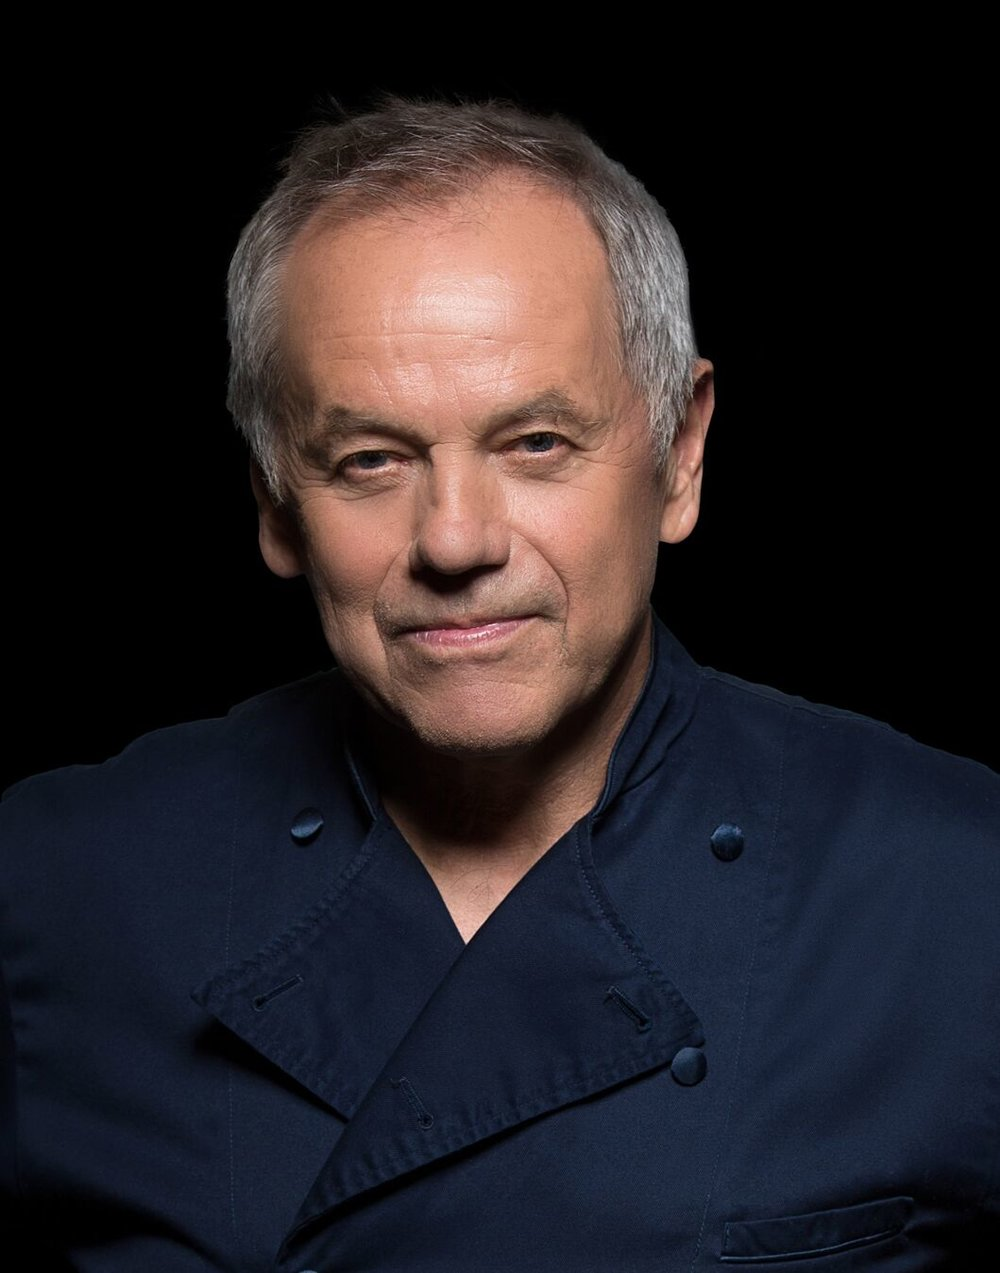 <strong>Wolfgang Puck</strong><br>Cut by Wolfgang Puck at The Four Seasons Hotel